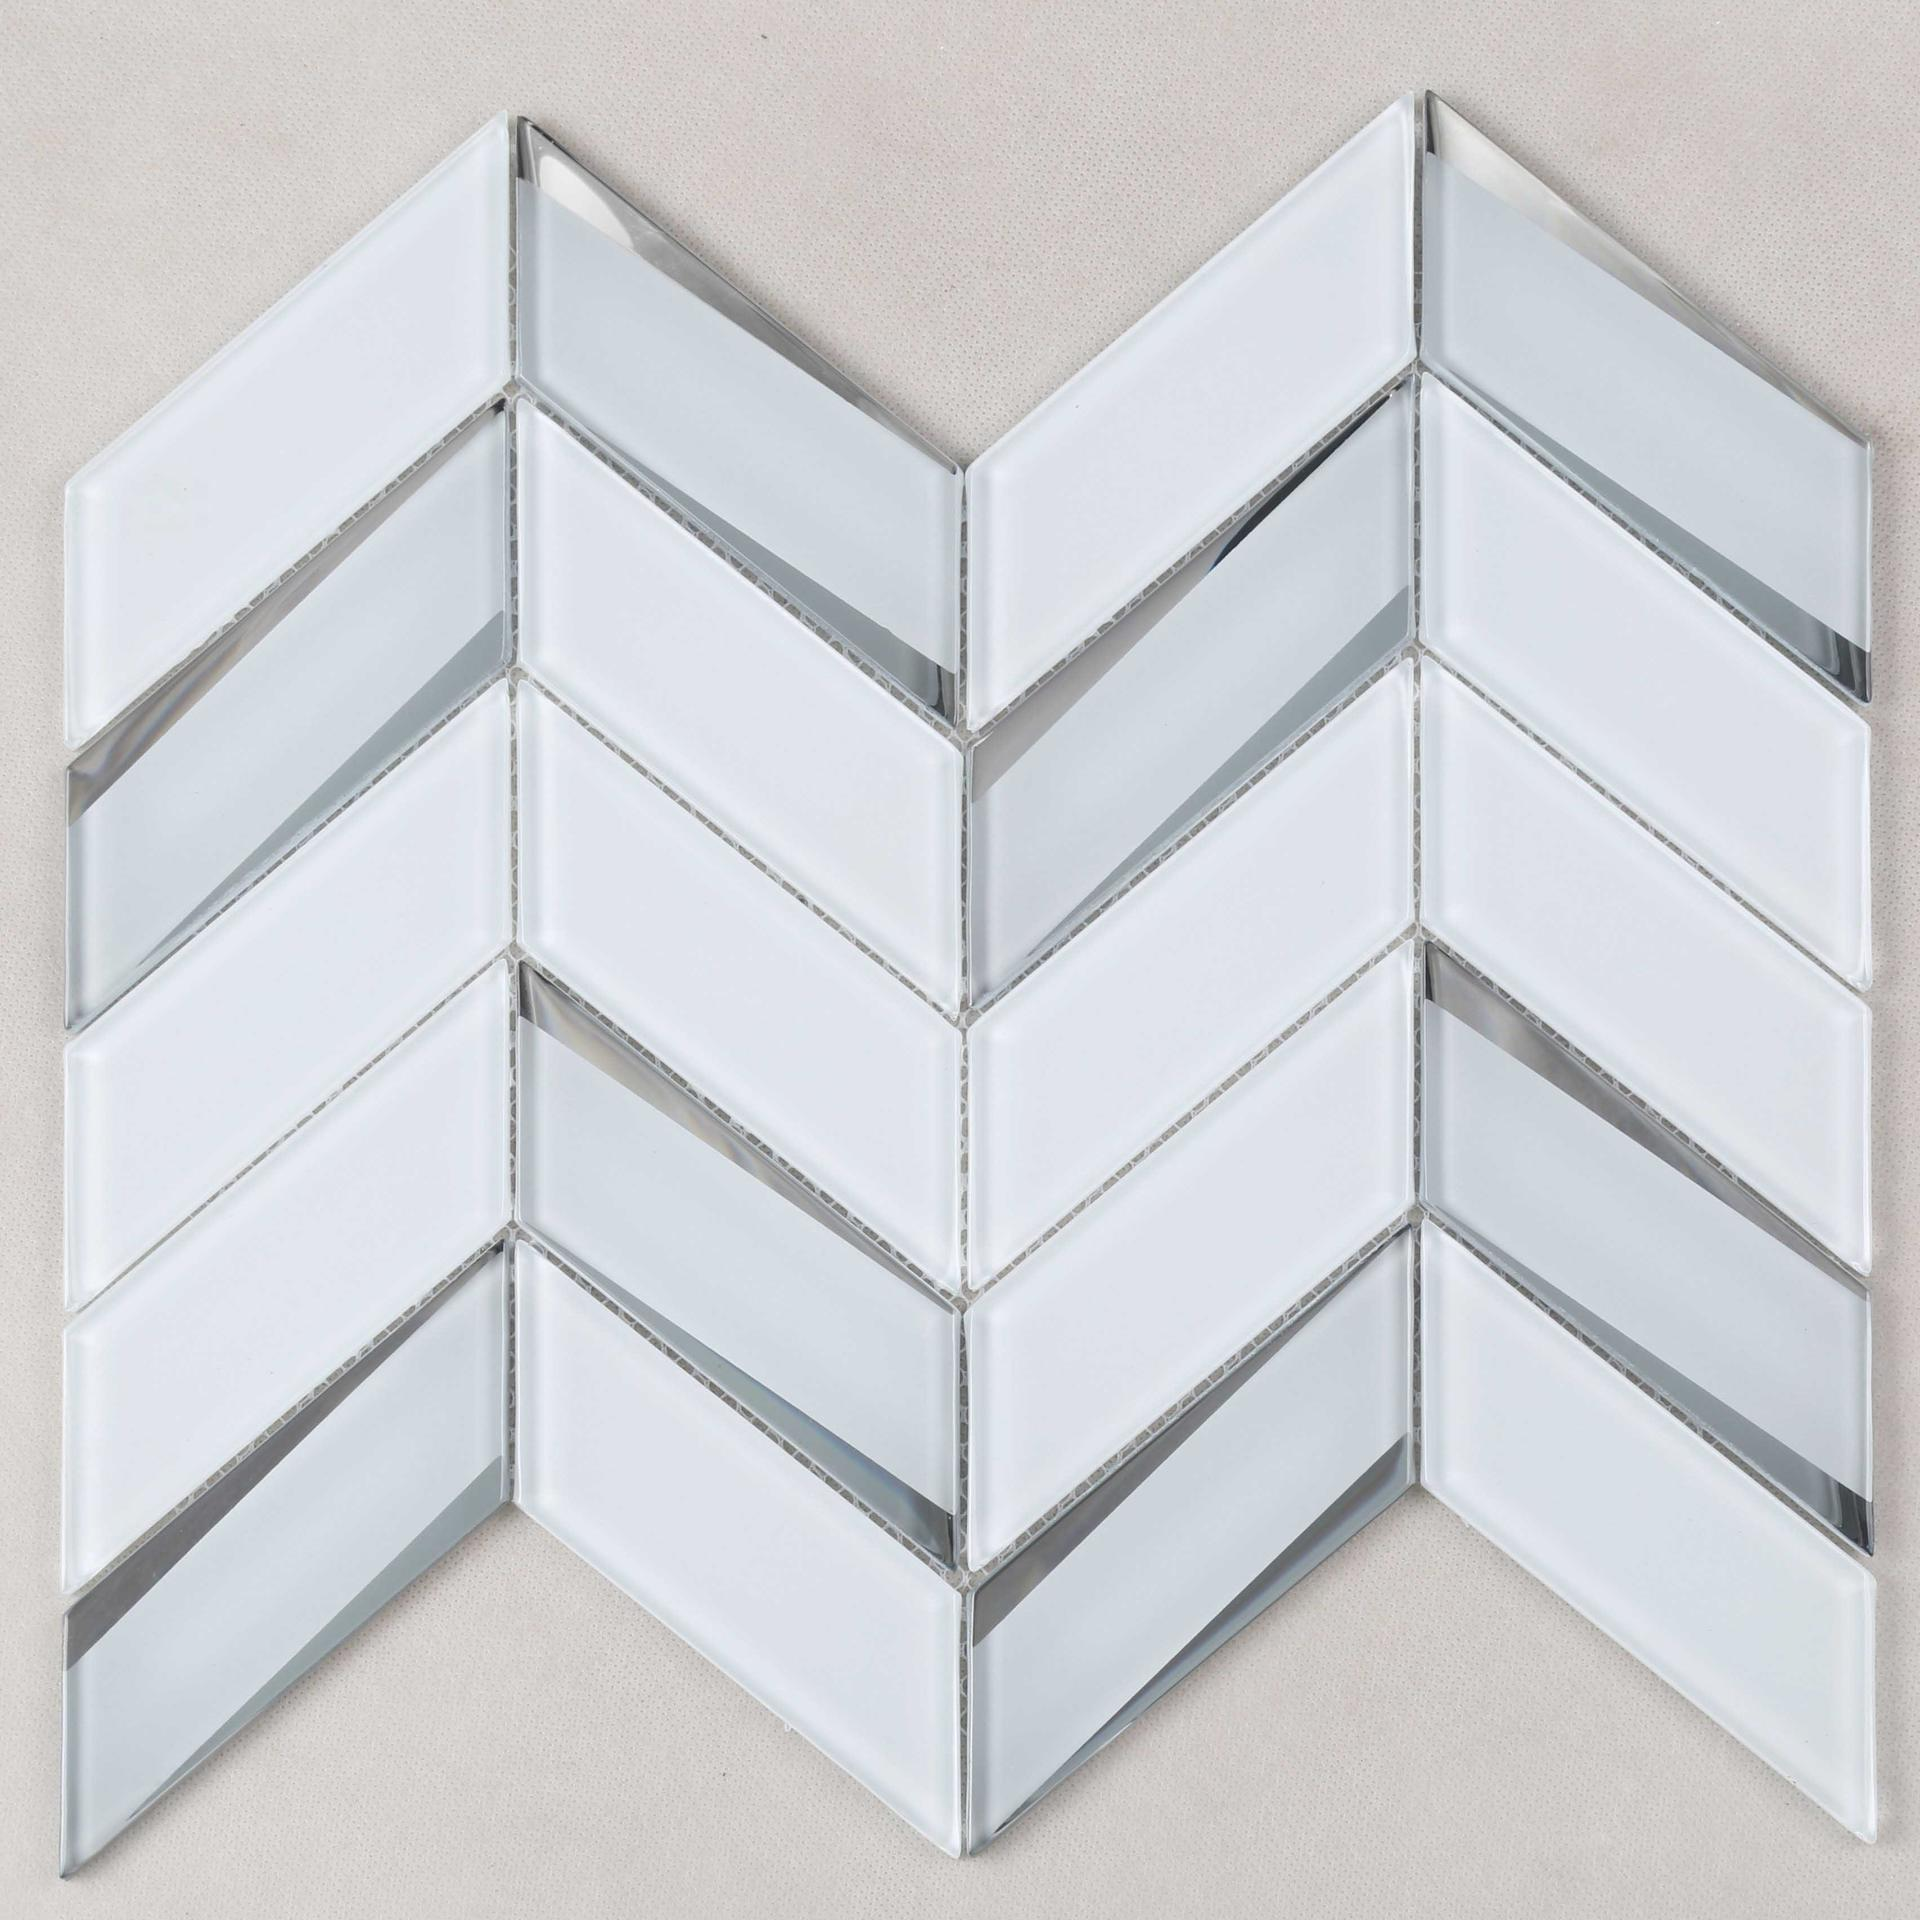 Super White Irregular Bevel Glass Mosaic Tile